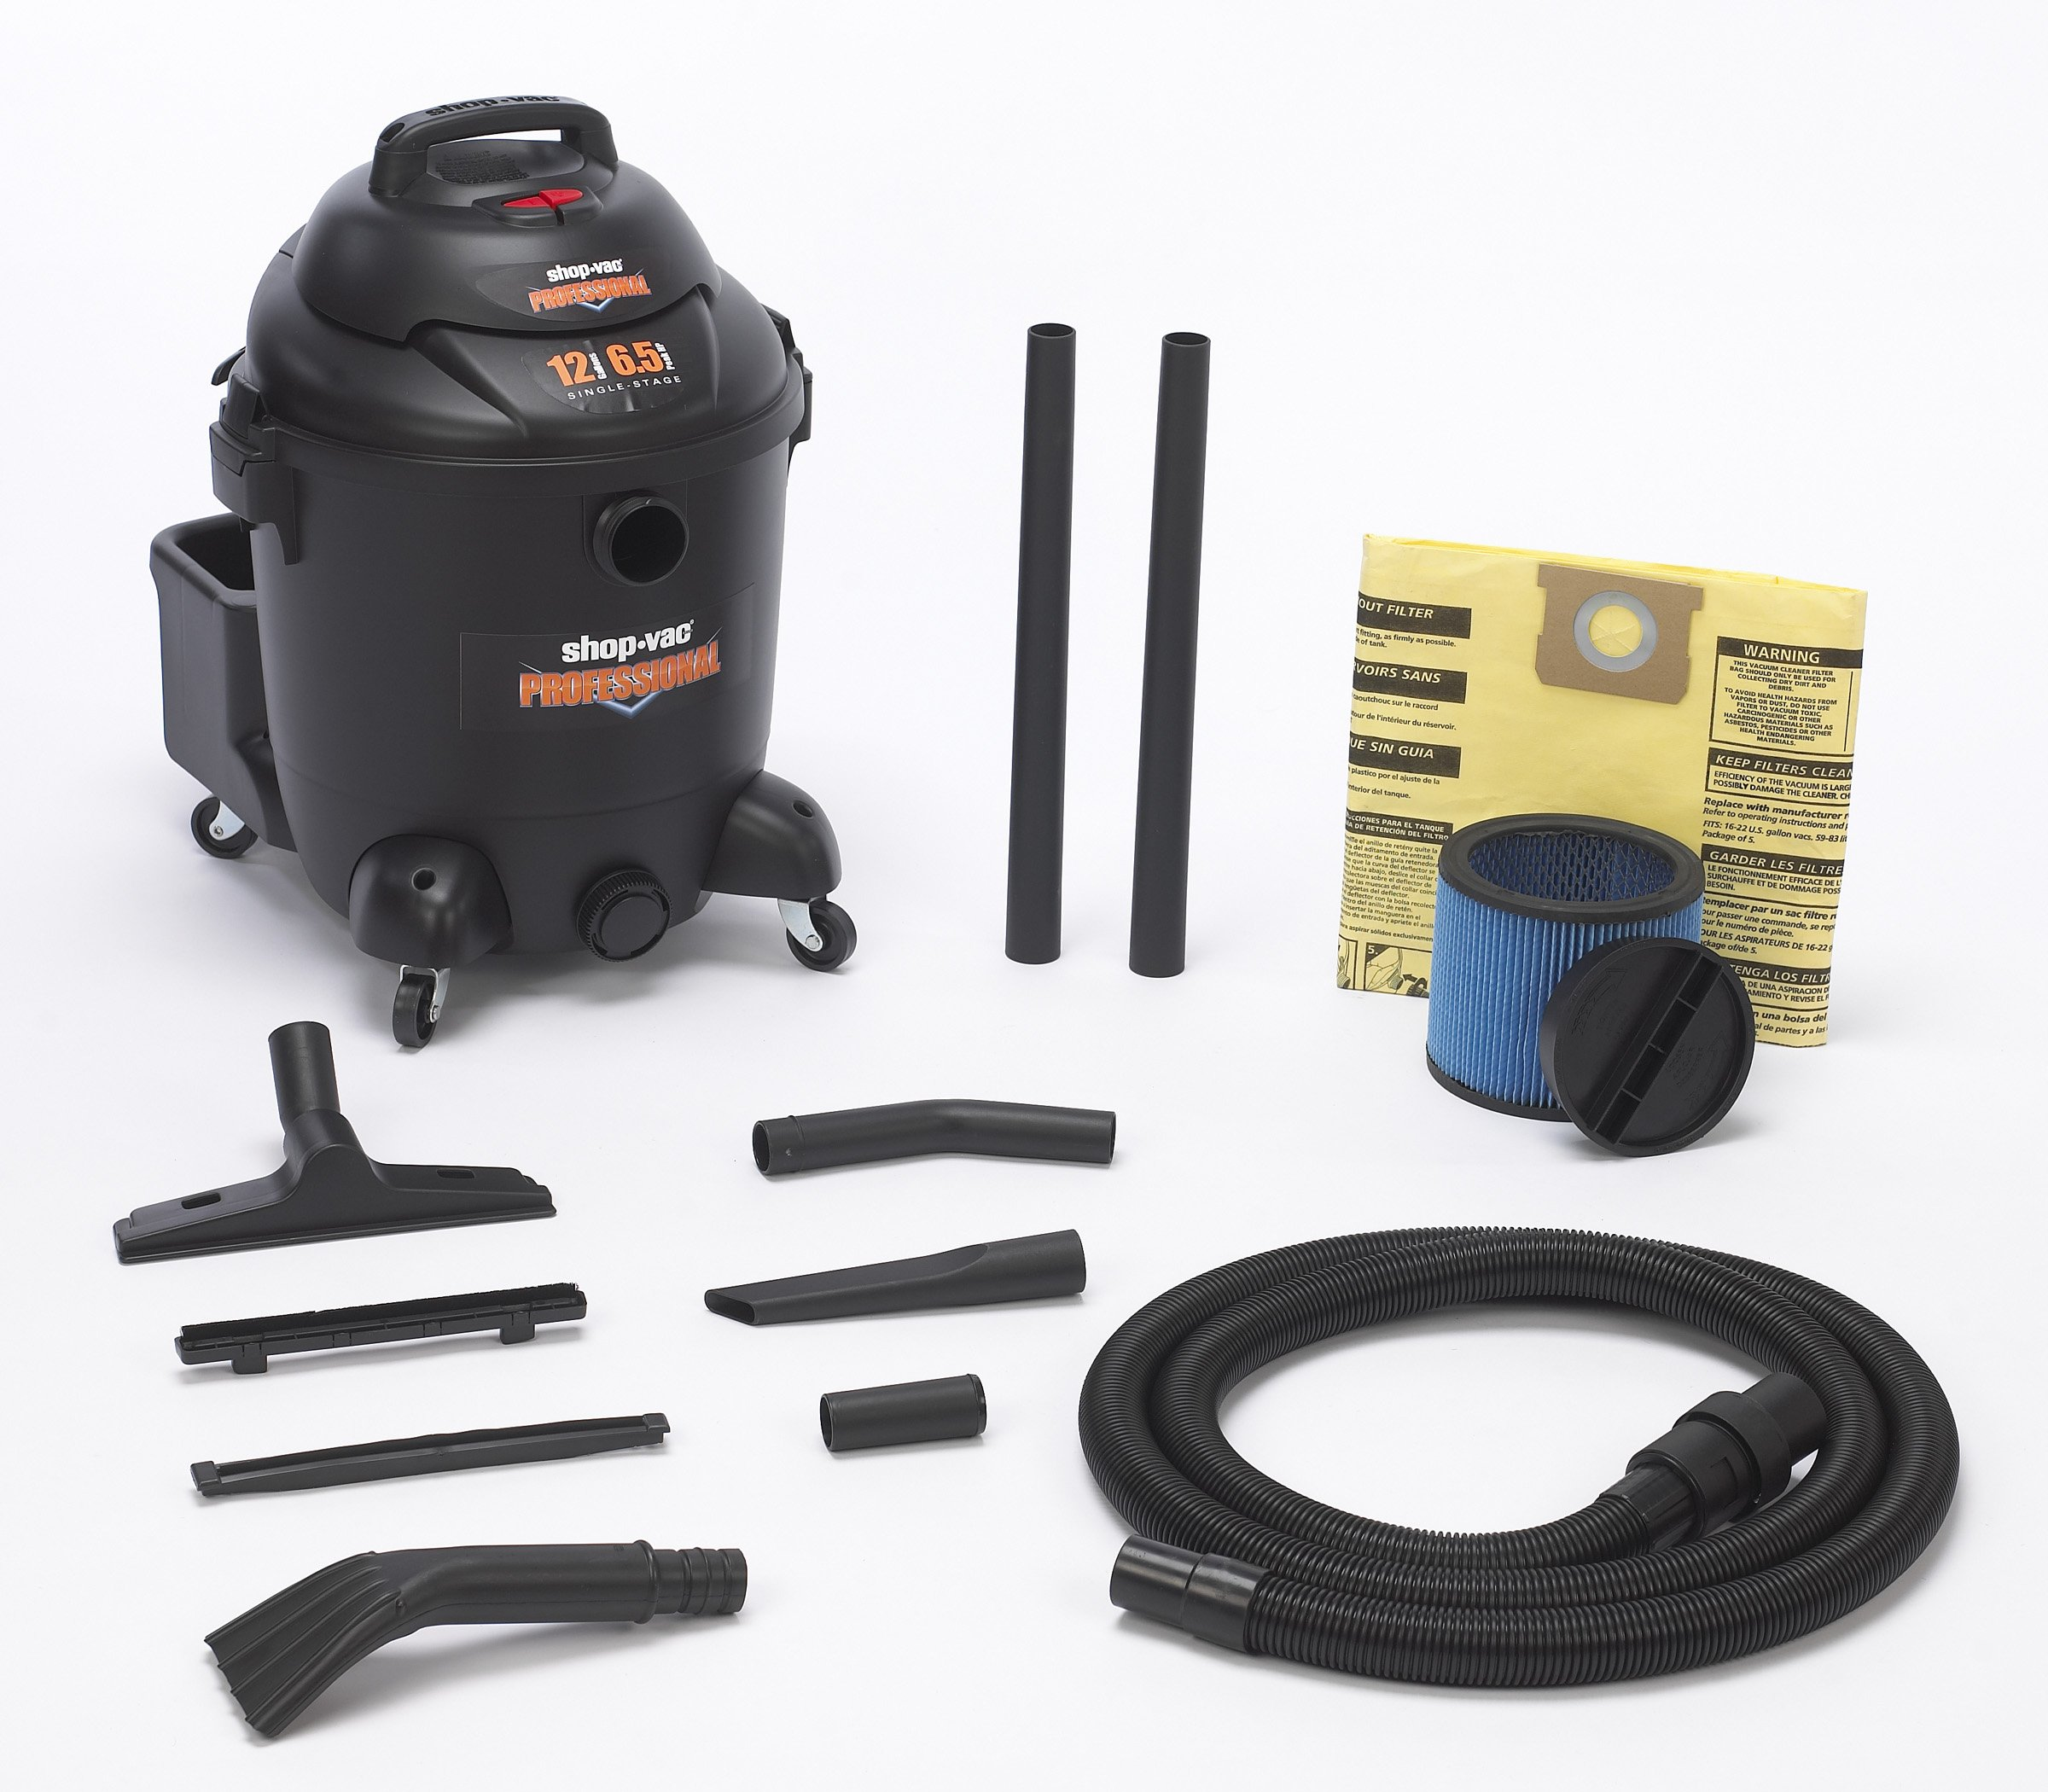 Shop-Vac 9621210 Professional Commercial Duty Vacuum - 12 Gallon Capacity by Shop-Vac (Image #2)